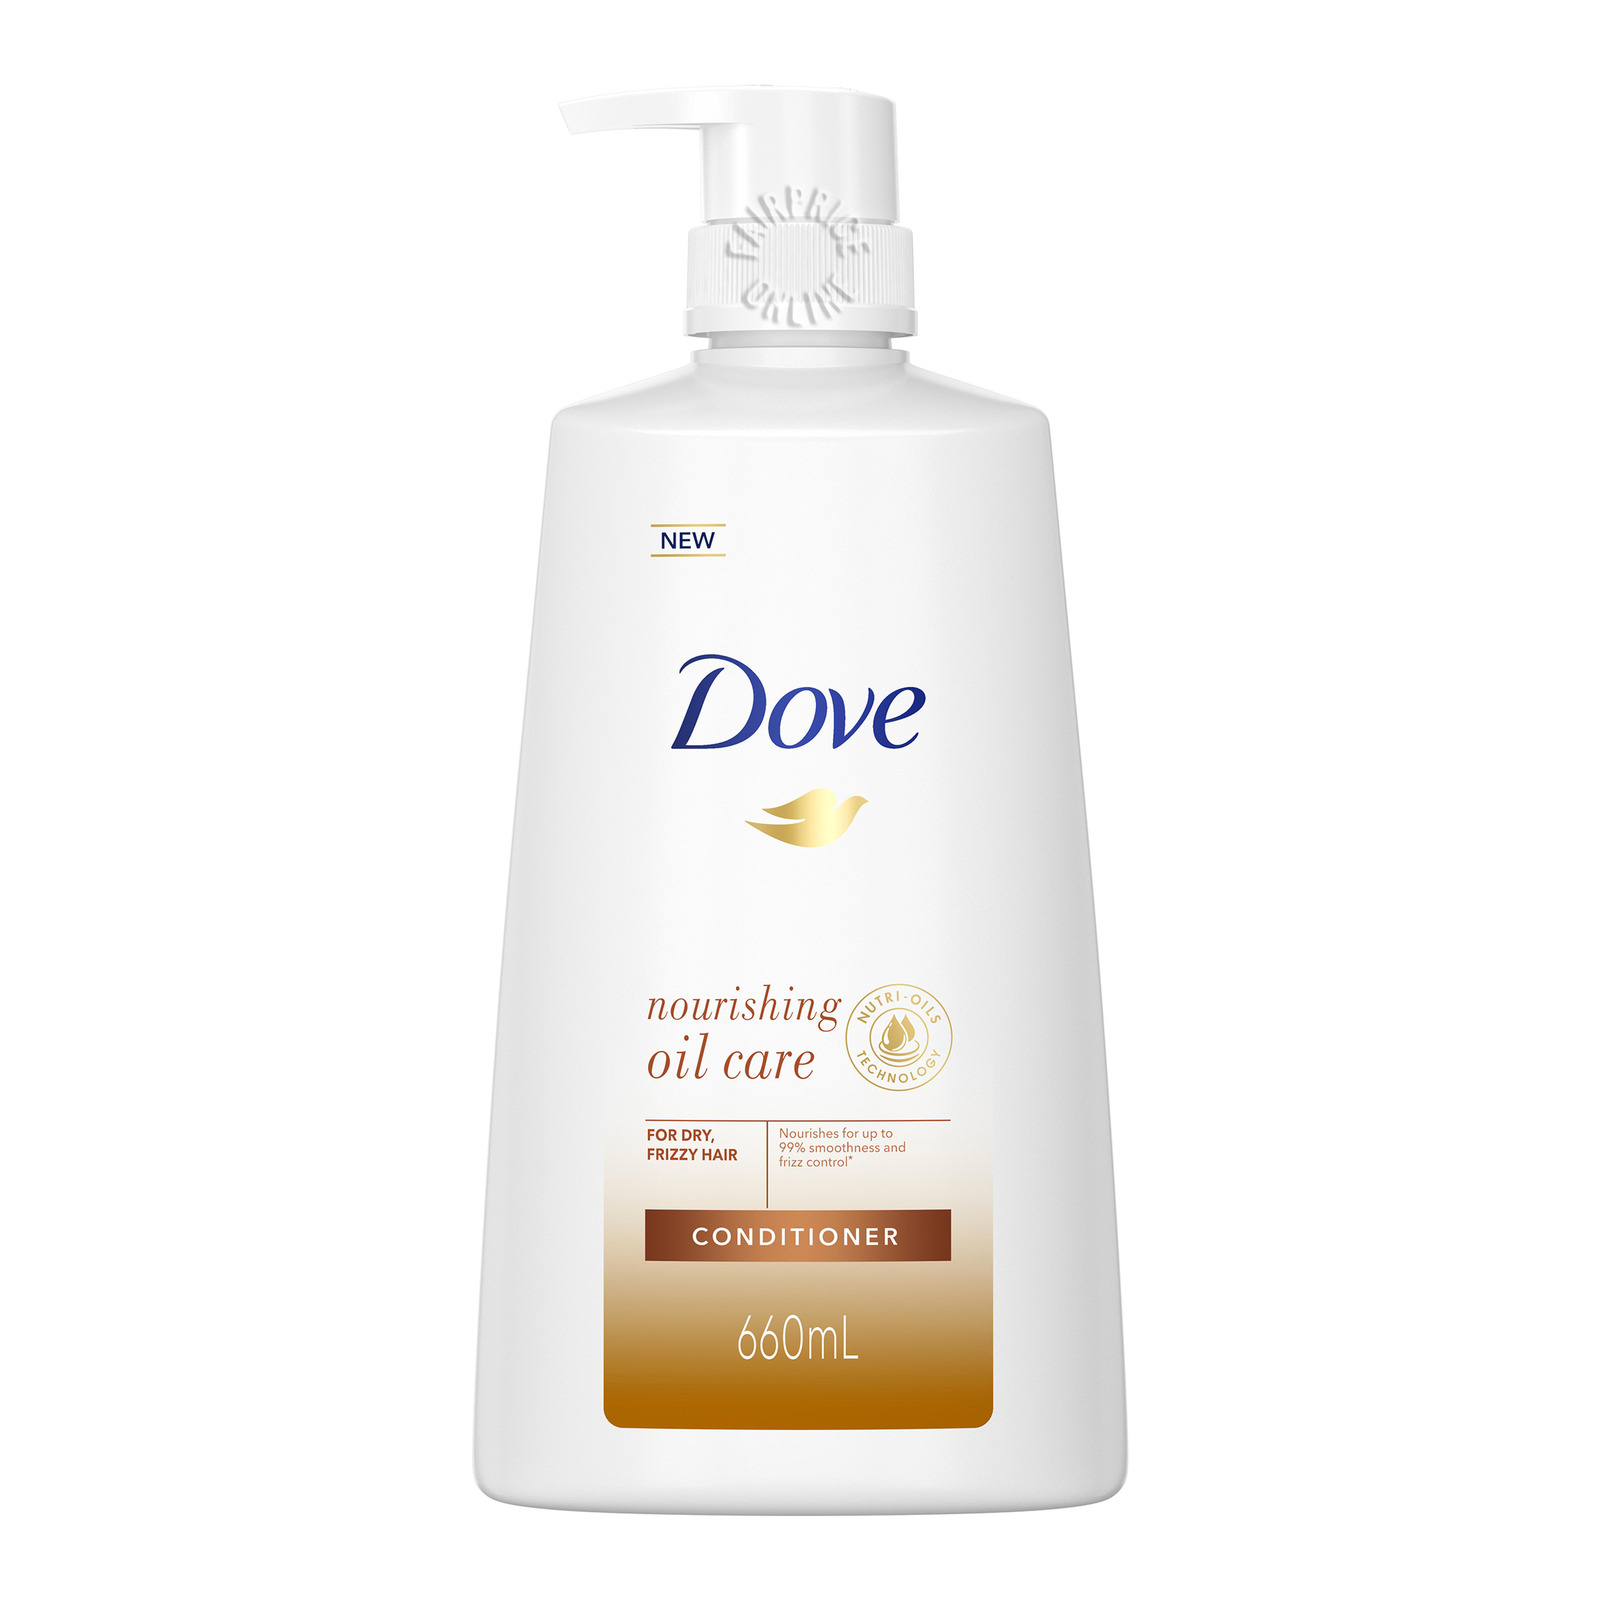 Dove Conditioner - Nourishing Oil Care